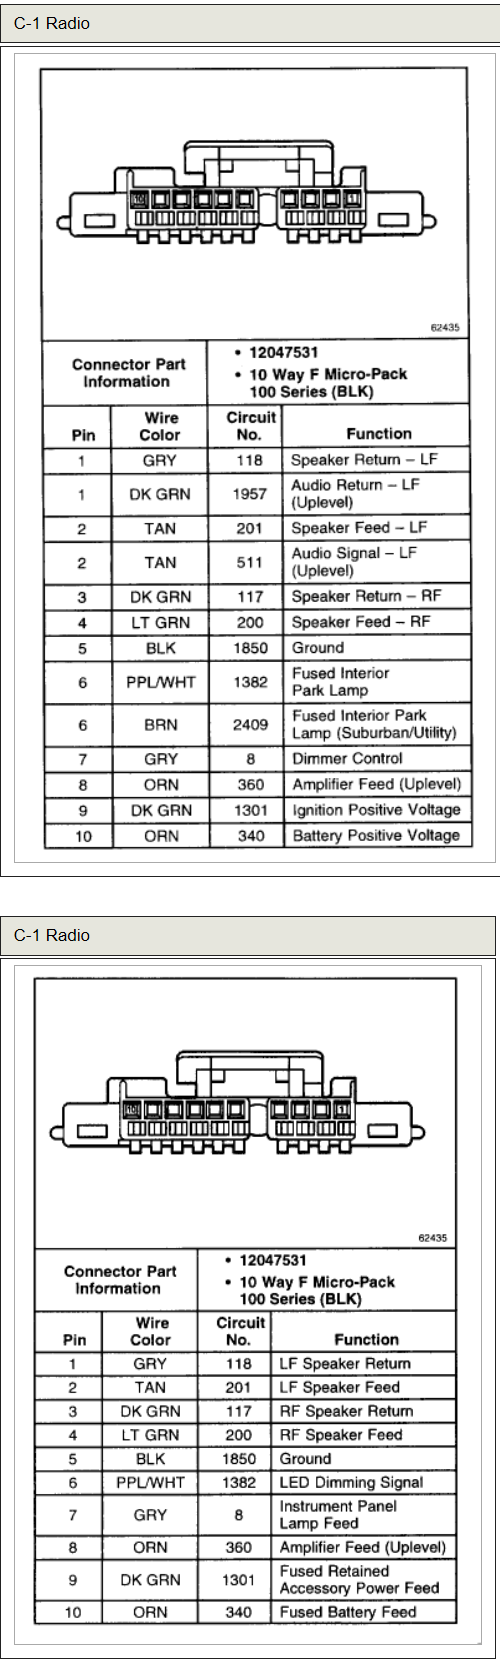 1999 chevy silverado radio wiring diagram 20 unique 1999 chevy tahoe radio wiring diagram  1999 chevy tahoe radio wiring diagram